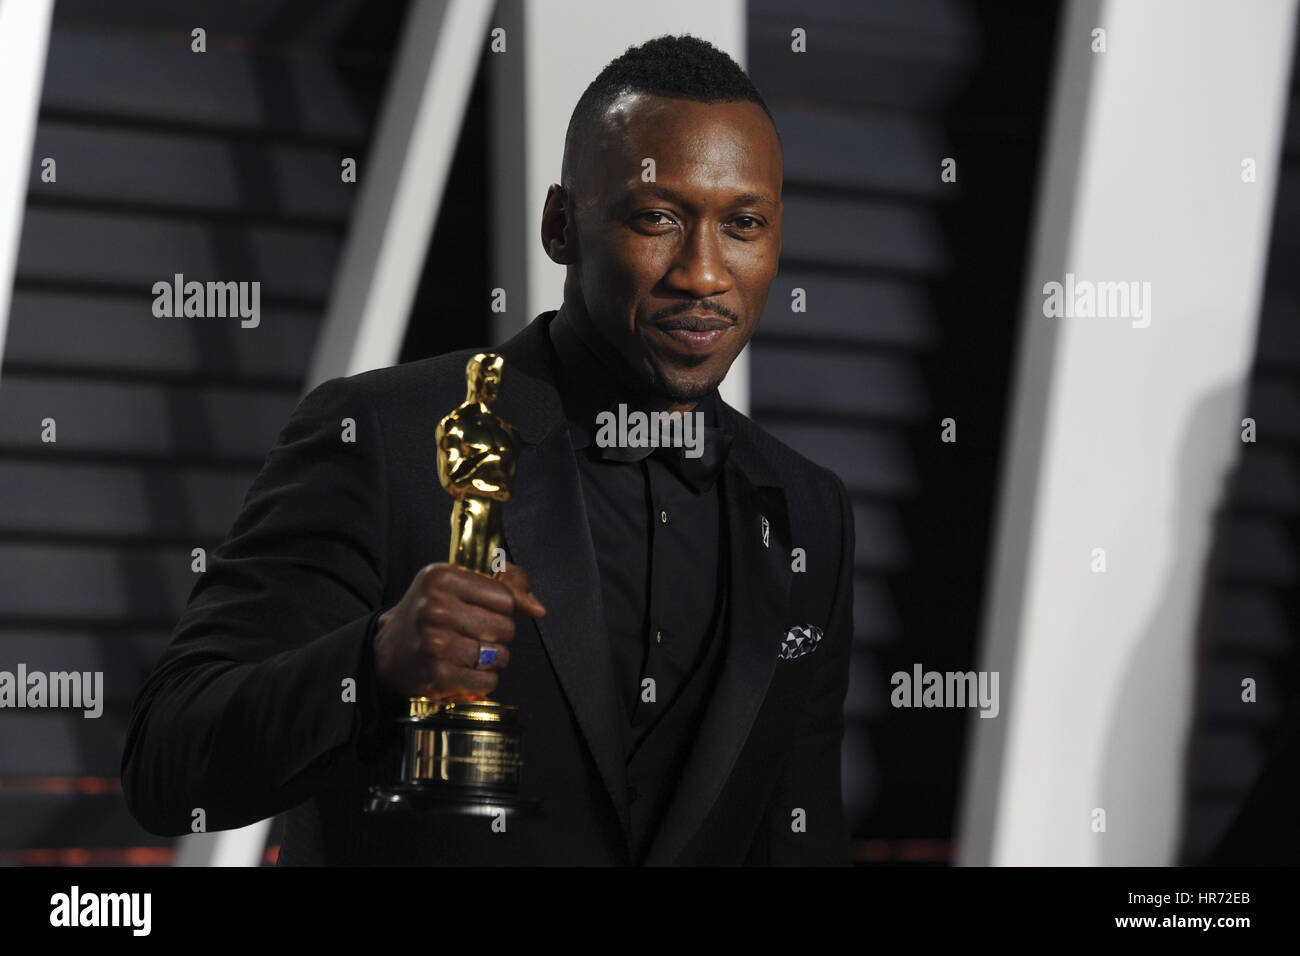 Beverly Hills, California. 26 Feb, 2017. Ali Mahershala atiende el 2017 Vanity Fair Oscar Party organizada por Graydon Imagen De Stock